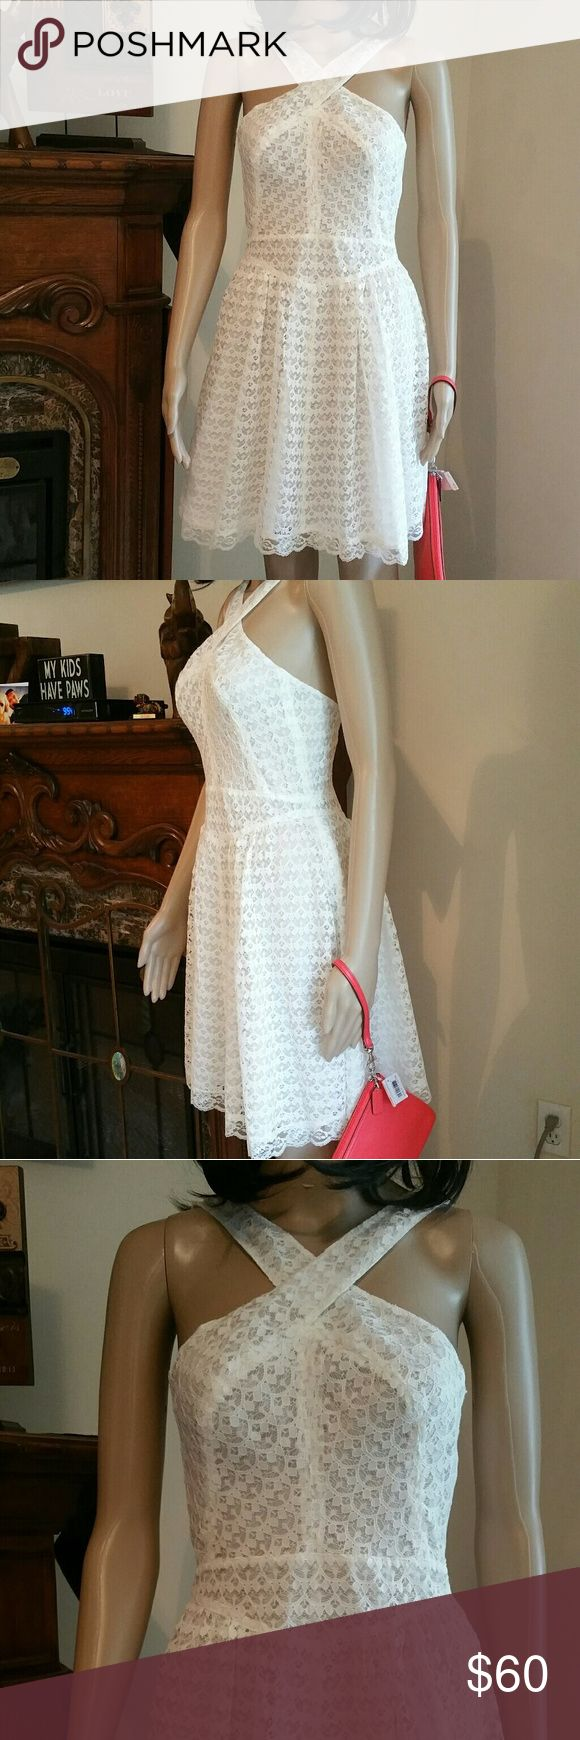 White Lace Dress Victoria's Secret Mode Intl Sz 2 White Lace Dress by Victoria's Secret  Label: Mode International  Size 2 Lace lined  Measurements are appropriates please leave a little room  Breast 32 to 33 Waist 27 to 28 Length 33 shoulder to hem  MSRP $70 Moda International Dresses Mini